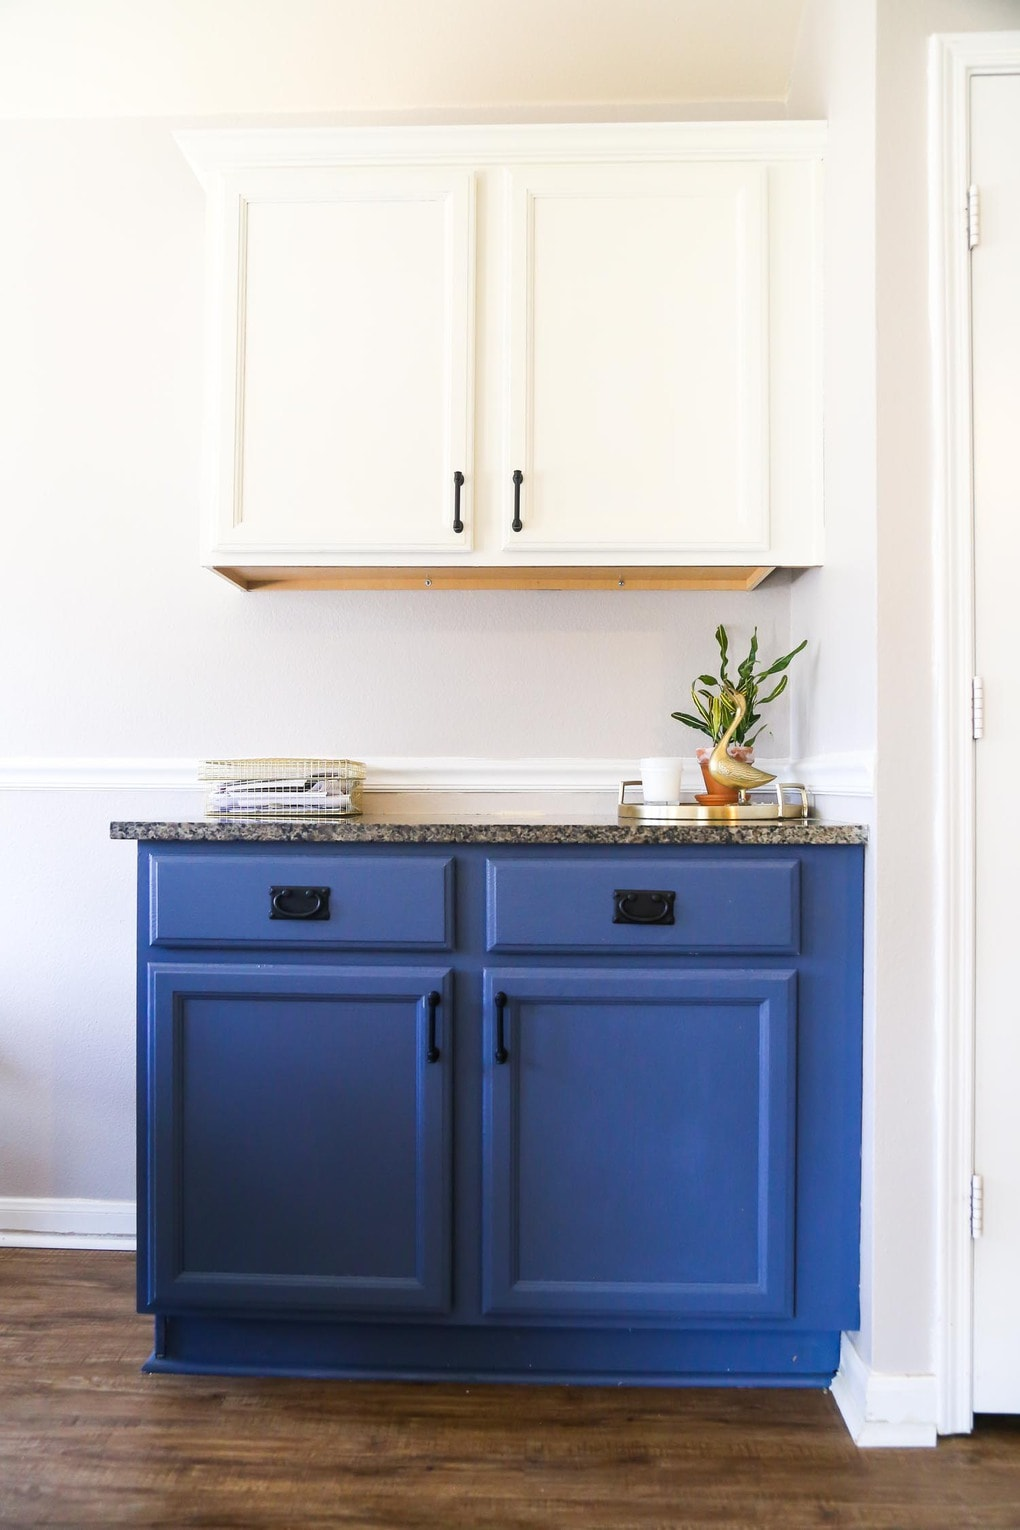 Gorgeous blue and white kitchen cabinets